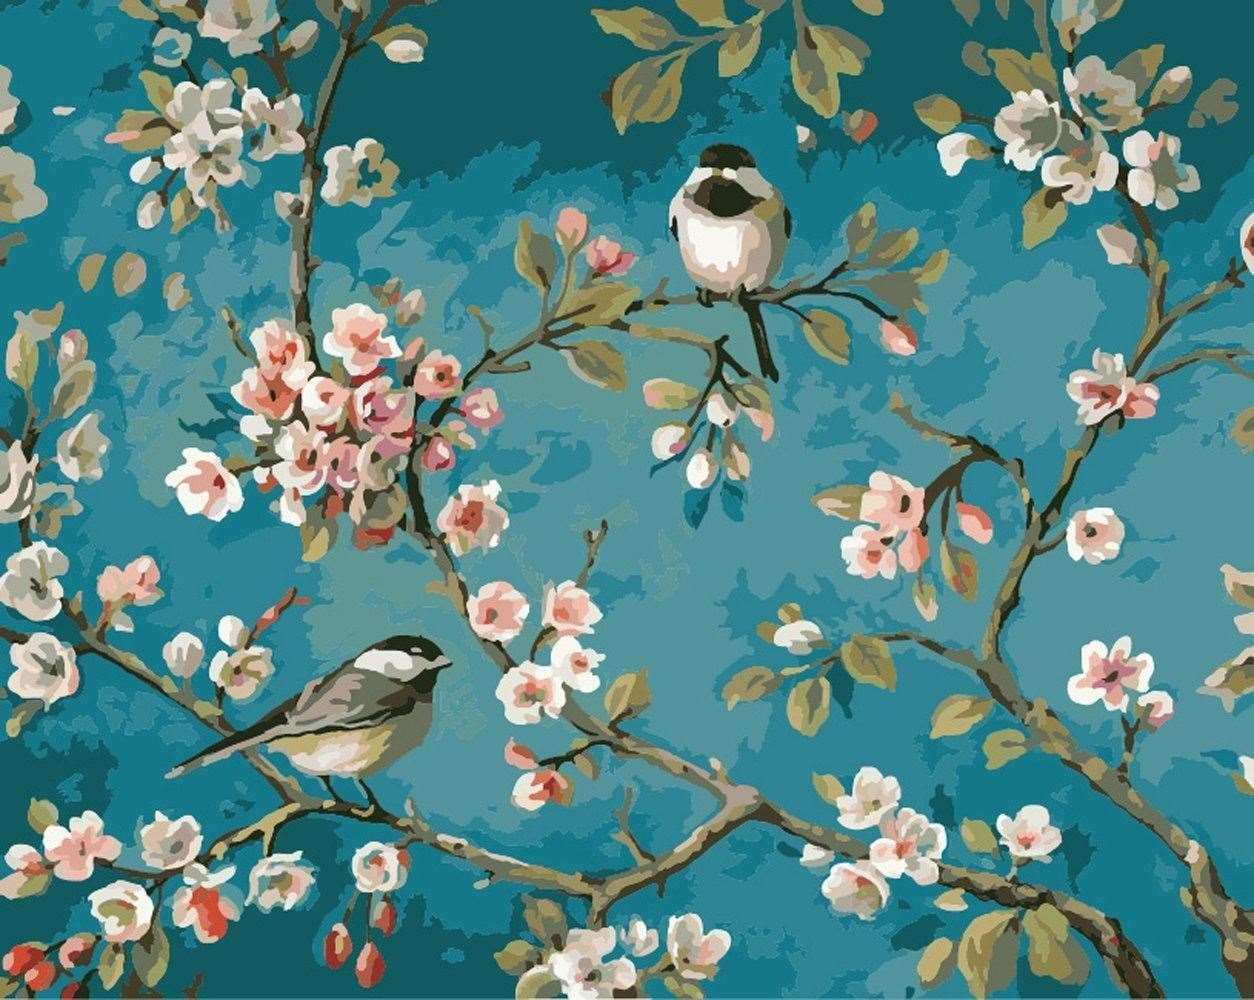 2018 Diy Diamond Painting Set Peach Blossom Bird Square